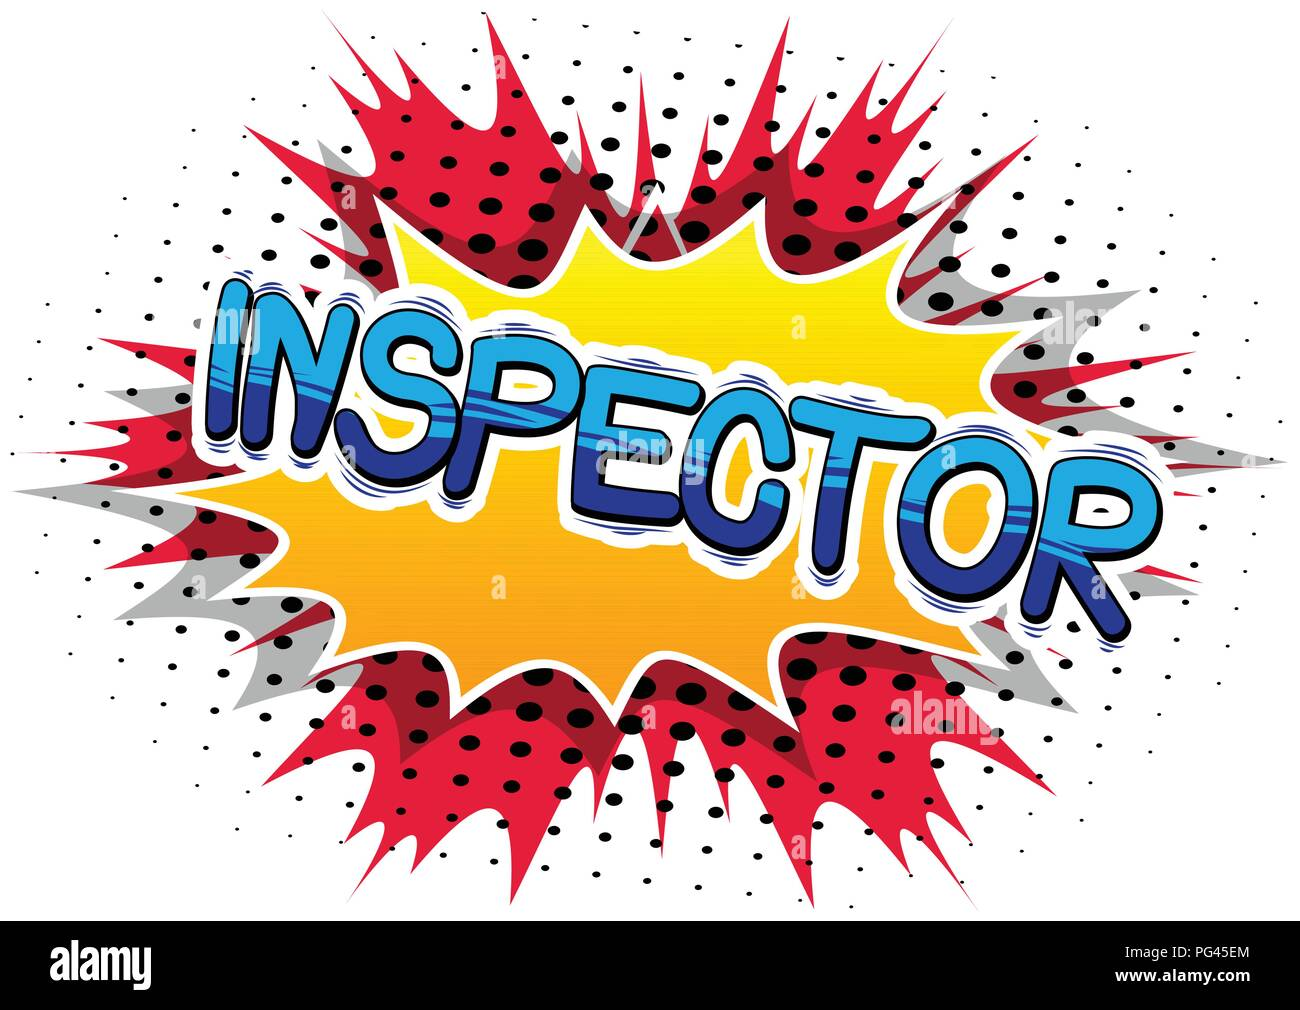 Inspector - Vector illustrated comic book style phrase. Stock Vector